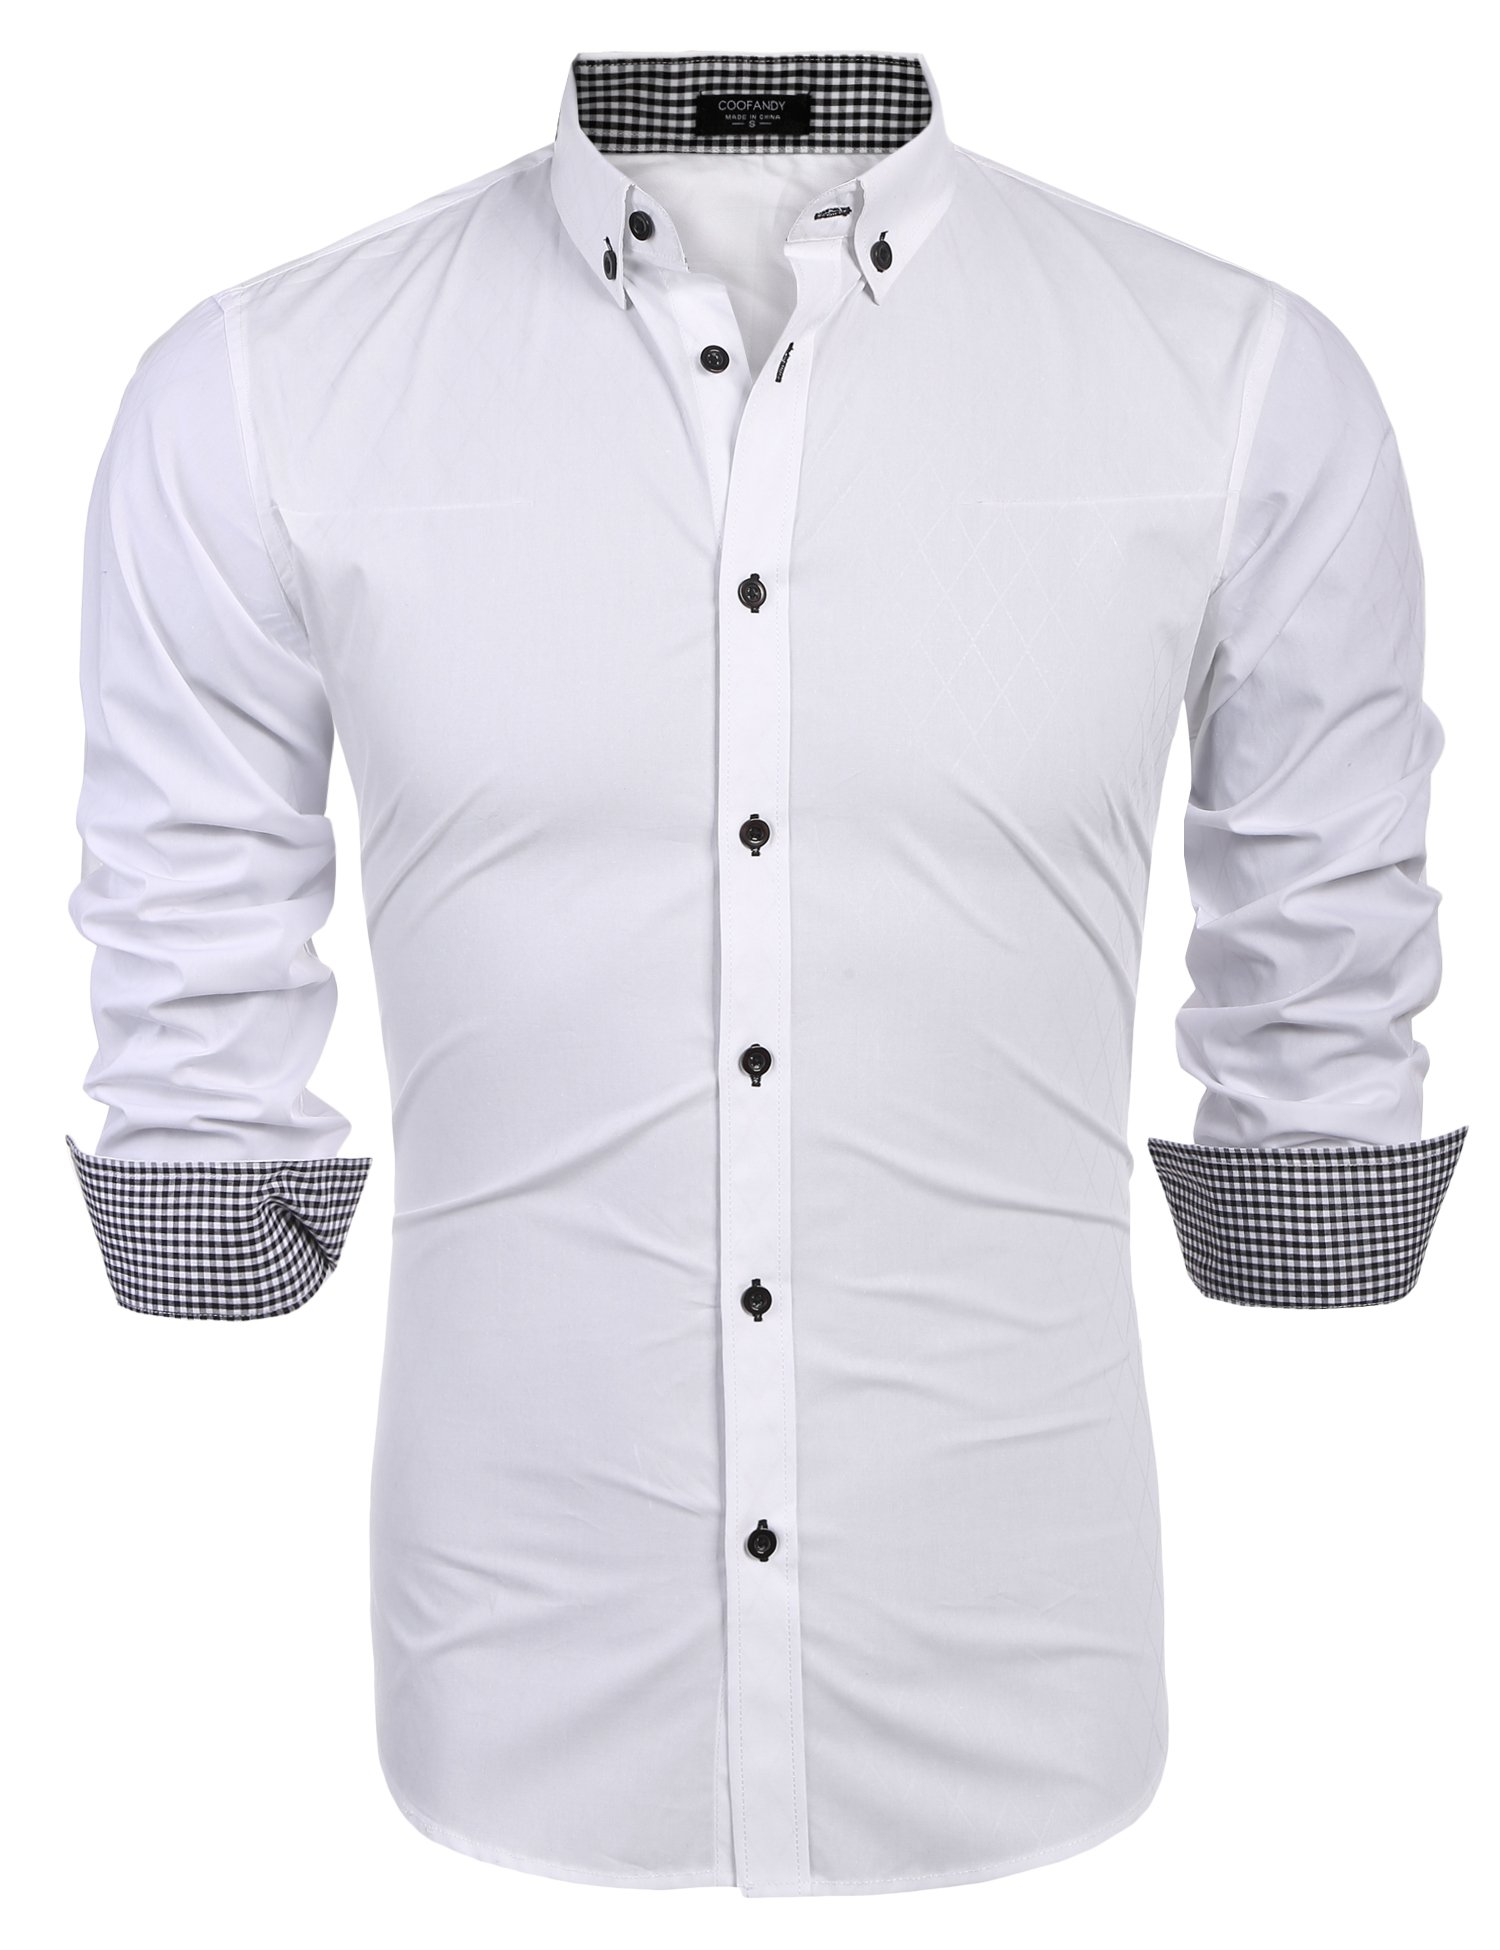 COOFANDY Men's Business Stylish Slim Fit Long Sleeve Casual Dress Shirt (S, White) by COOFANDY